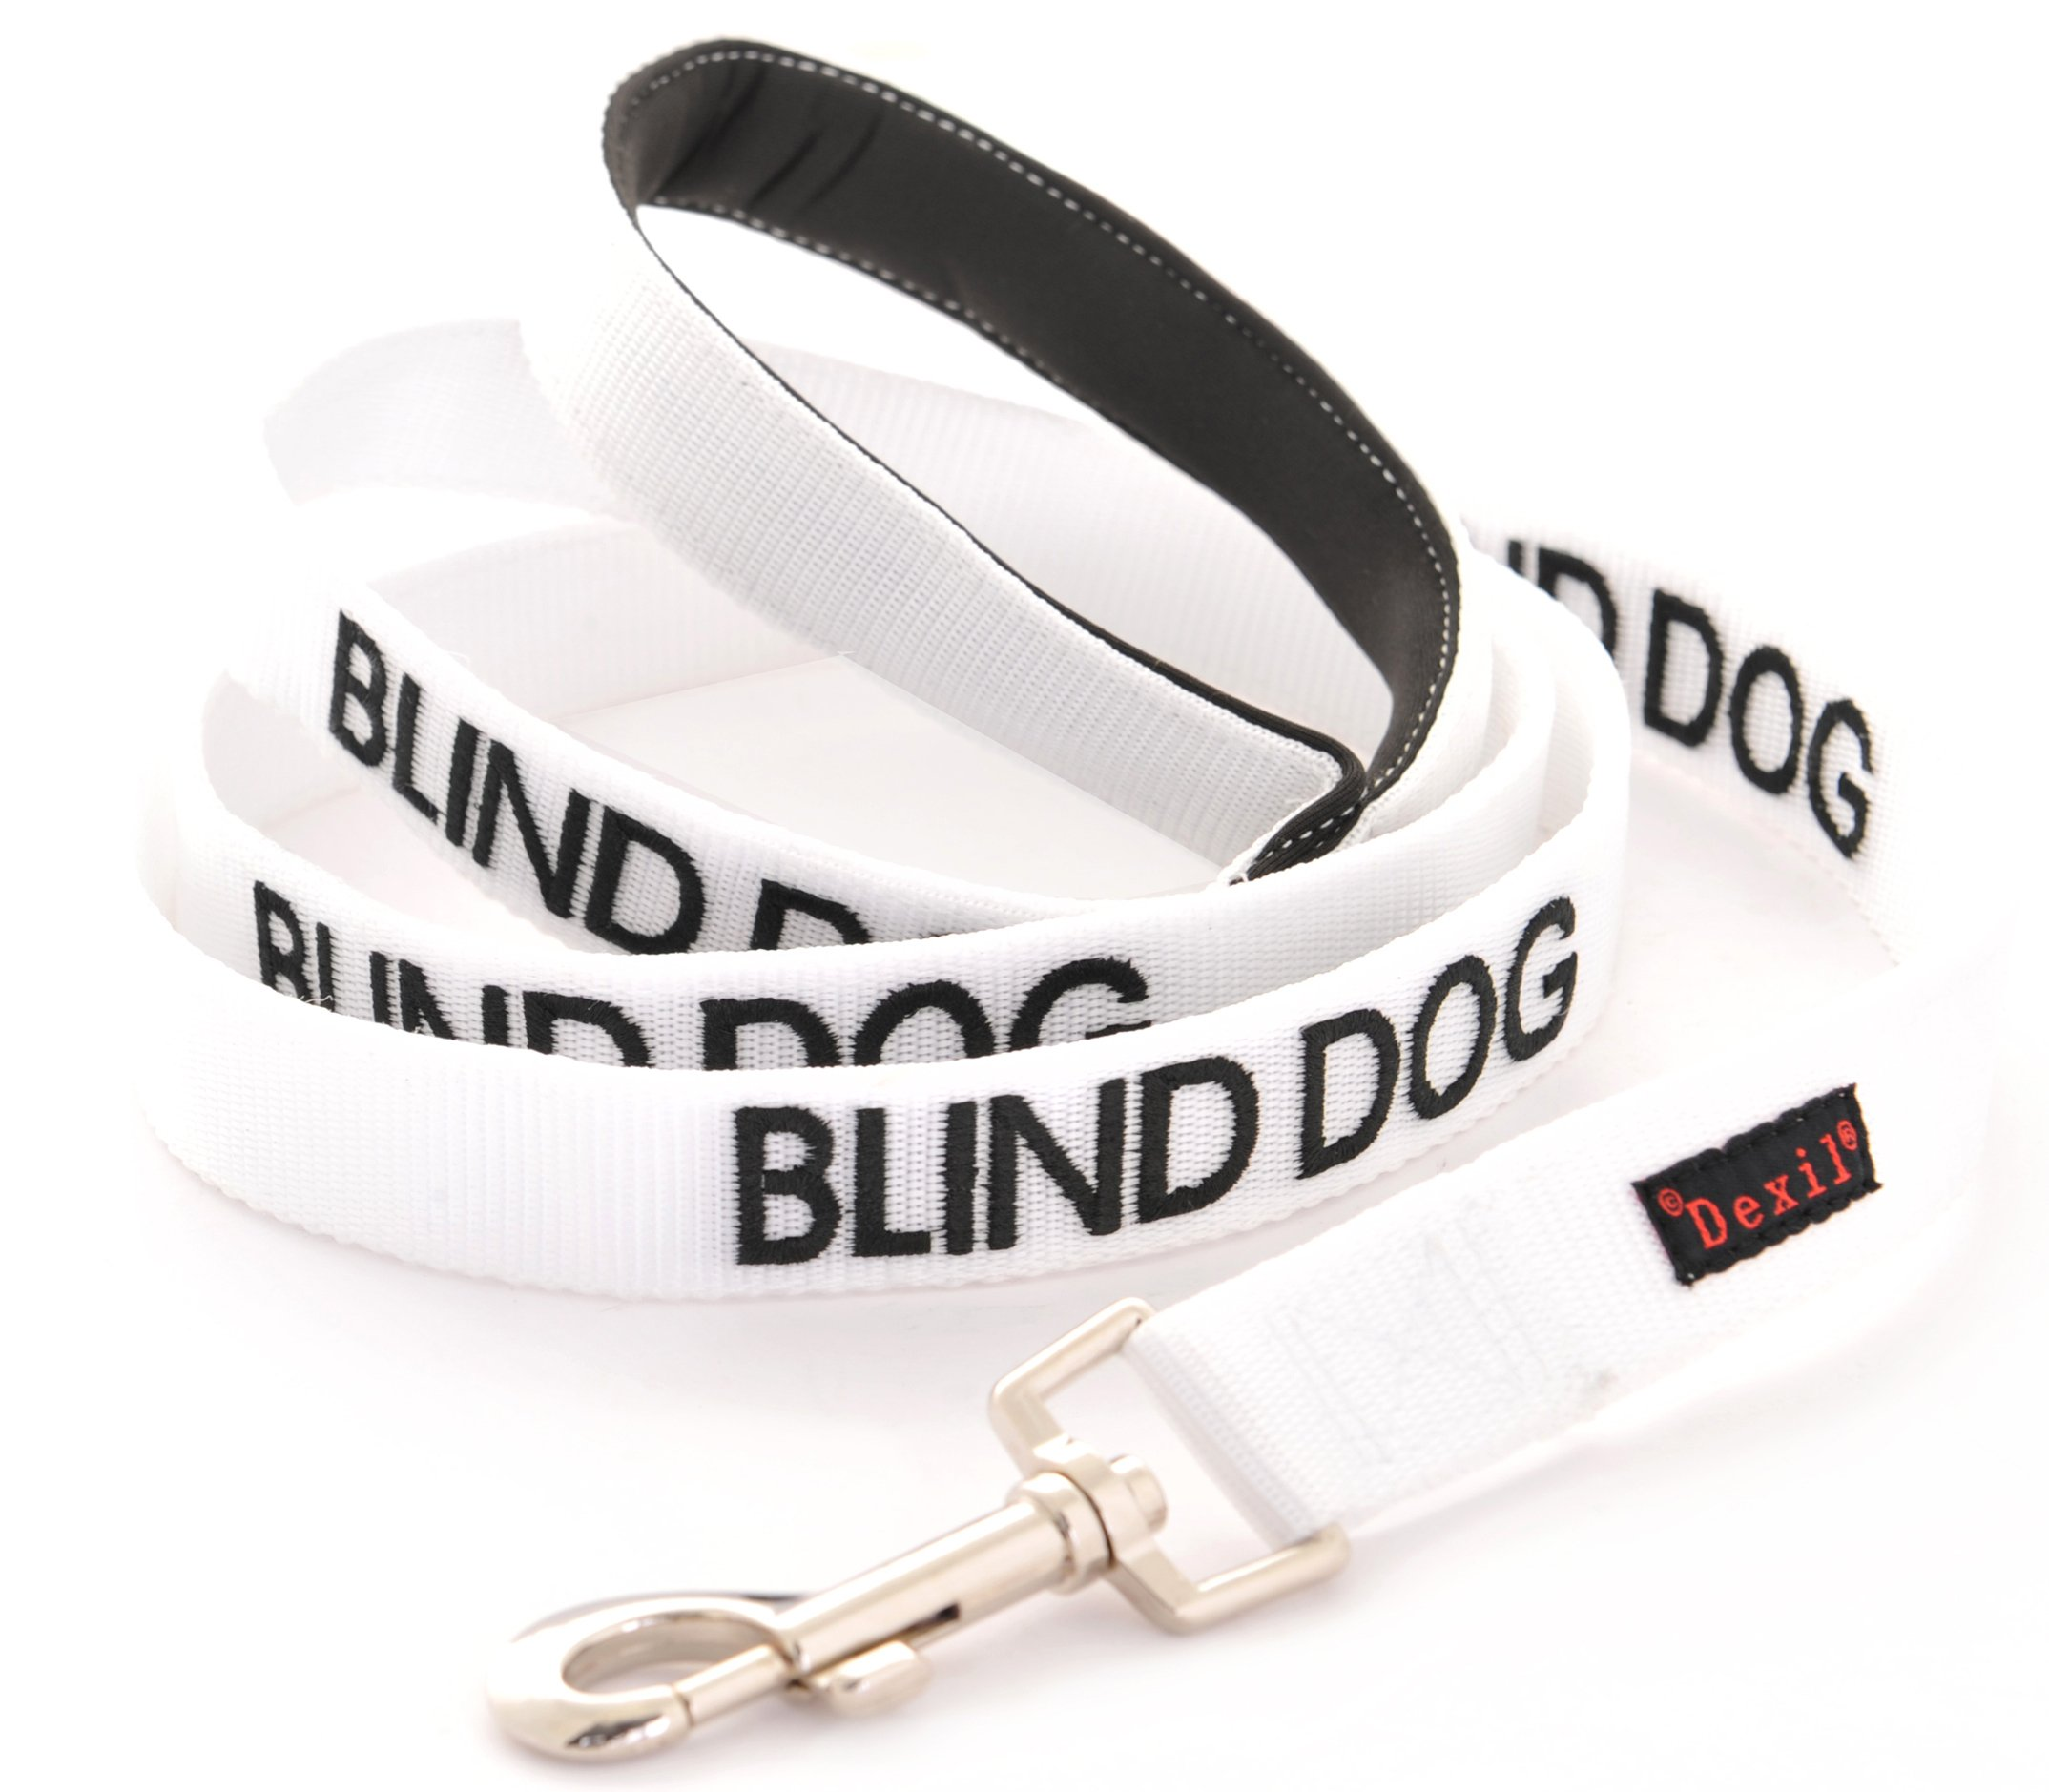 BLIND DOG White Color Coded Alert Warning 2 4 6 Foot Padded Dog Leash (No/Limited Sight) PREVENTS Accidents By Warning Others of Your Dog in Advance (Standard Leash)